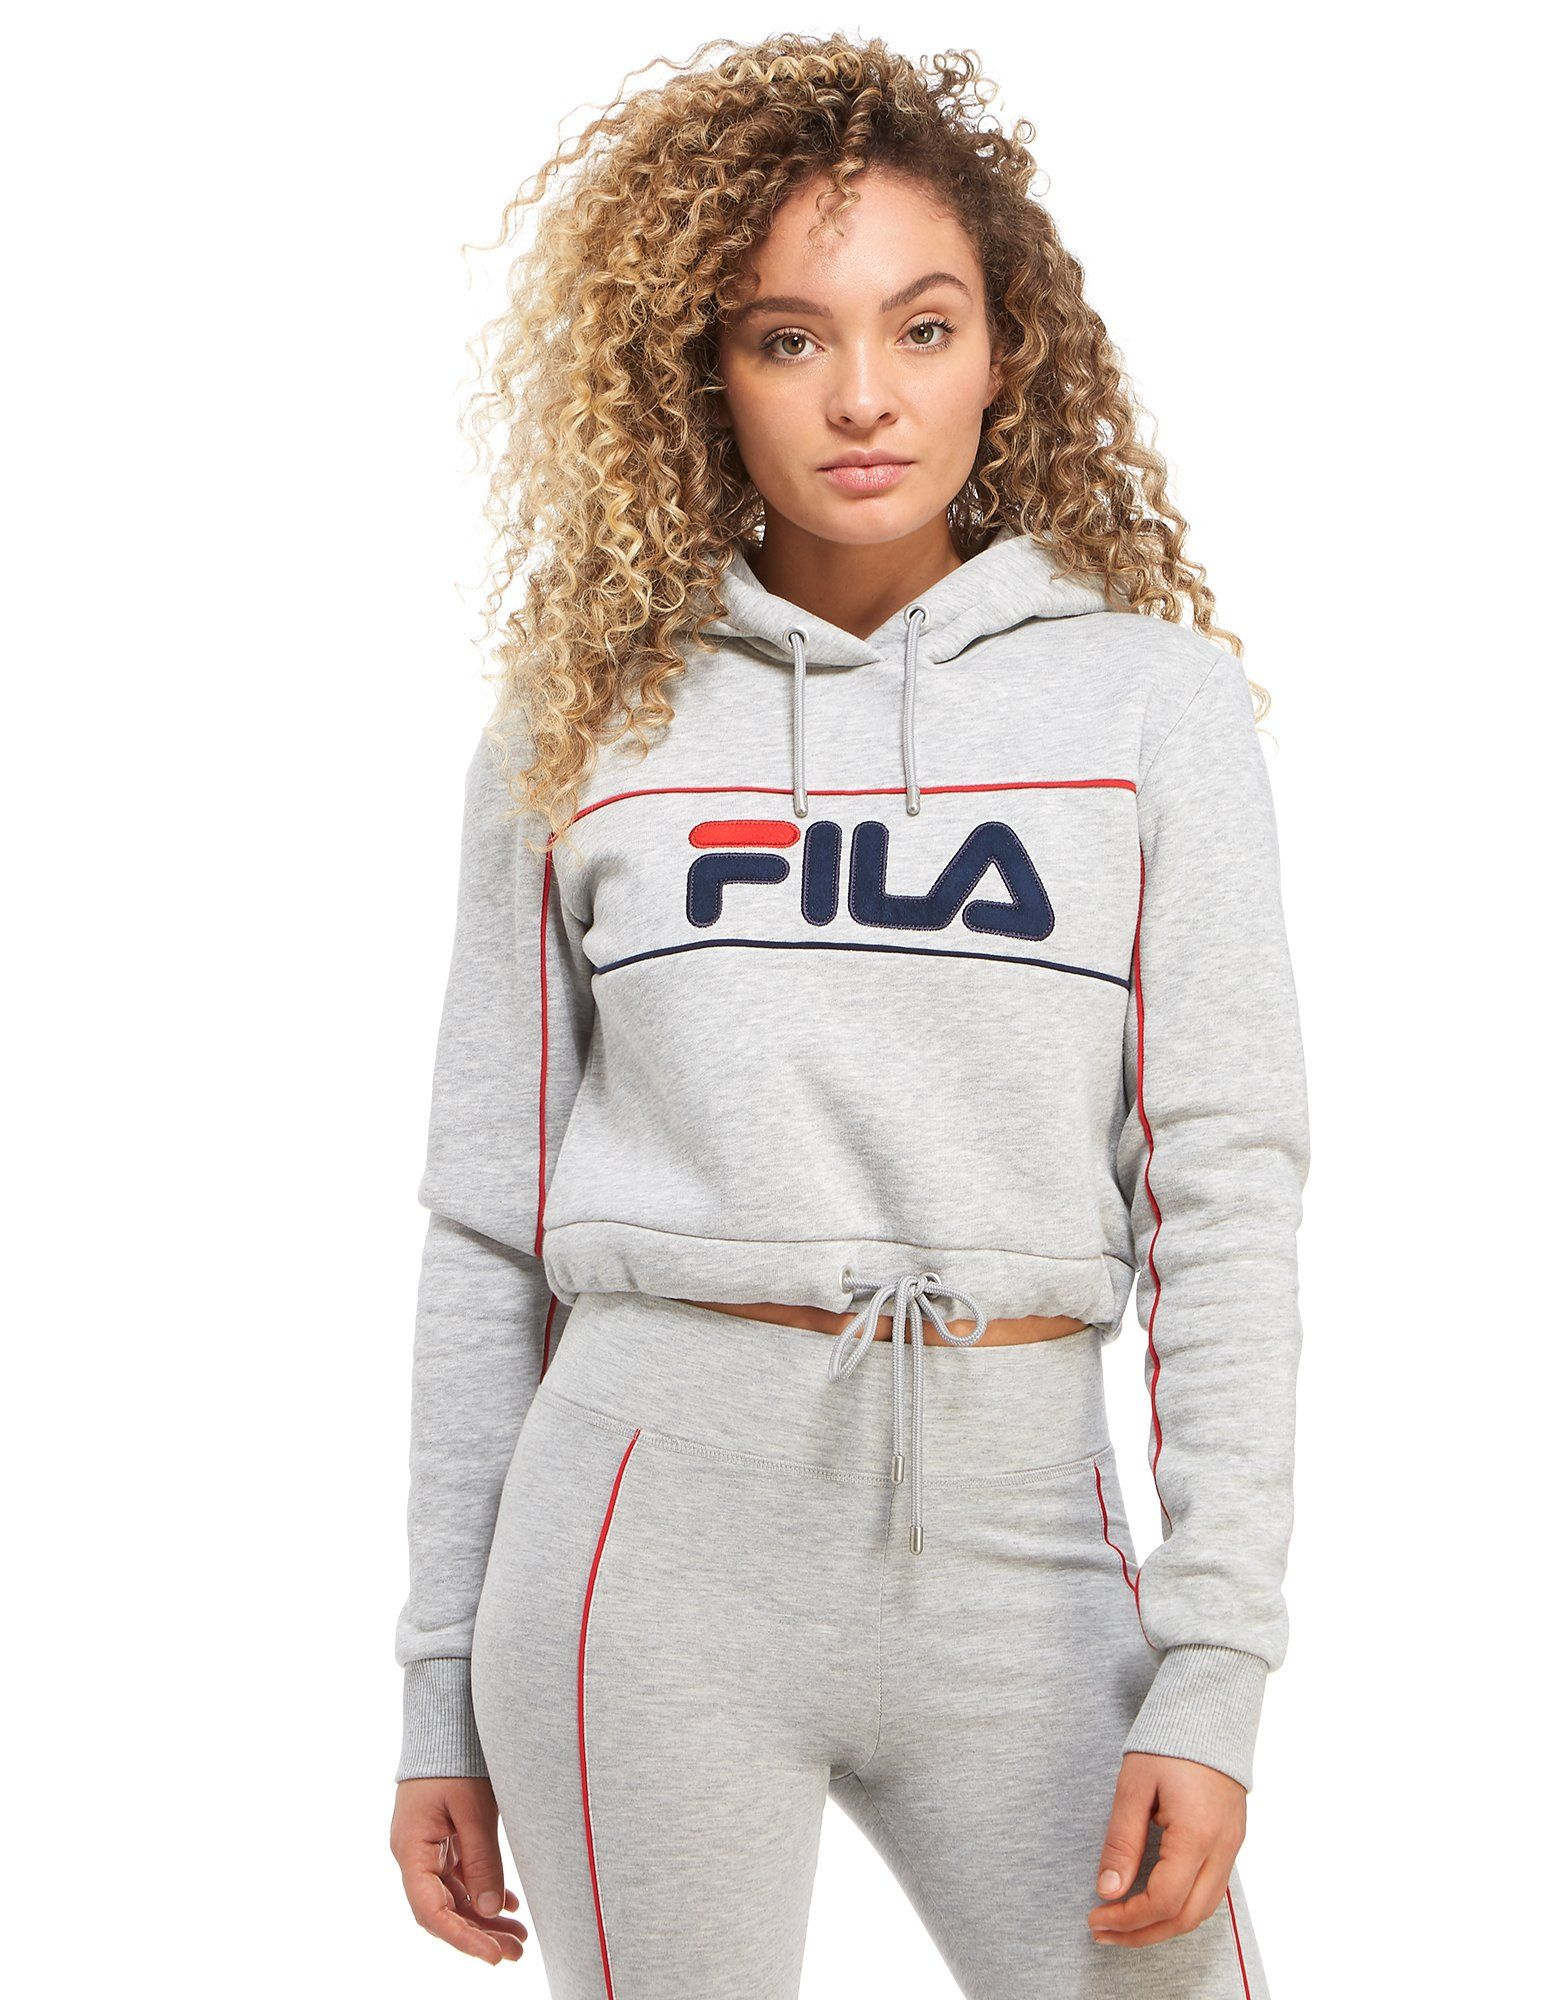 fila pipe logo crop hoodie jd sports. Black Bedroom Furniture Sets. Home Design Ideas